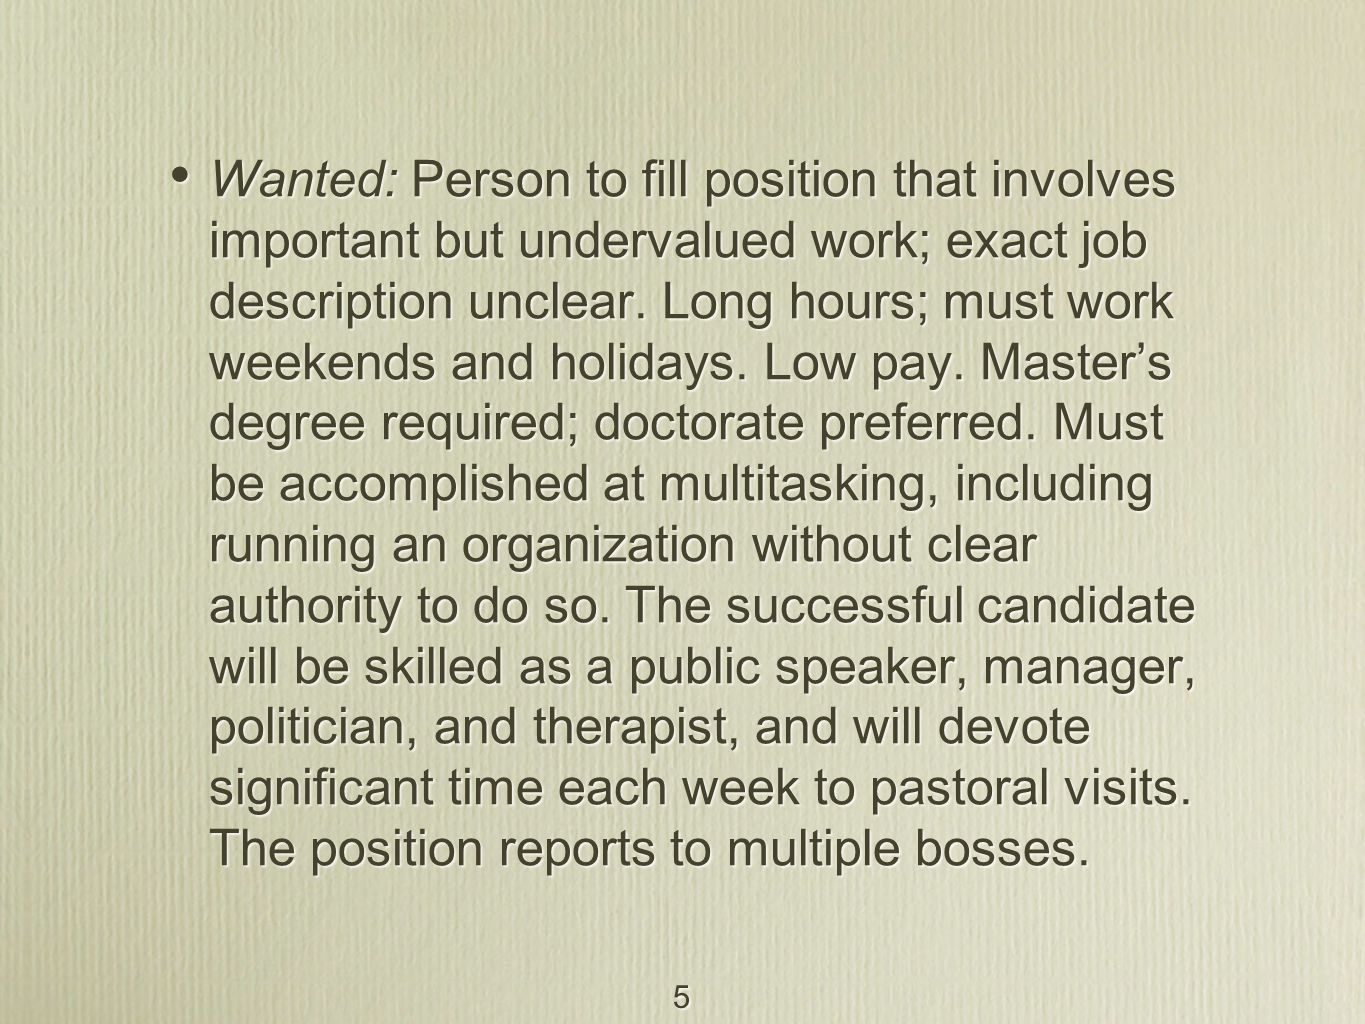 5 Wanted: Person to fill position that involves important but undervalued work; exact job description unclear.